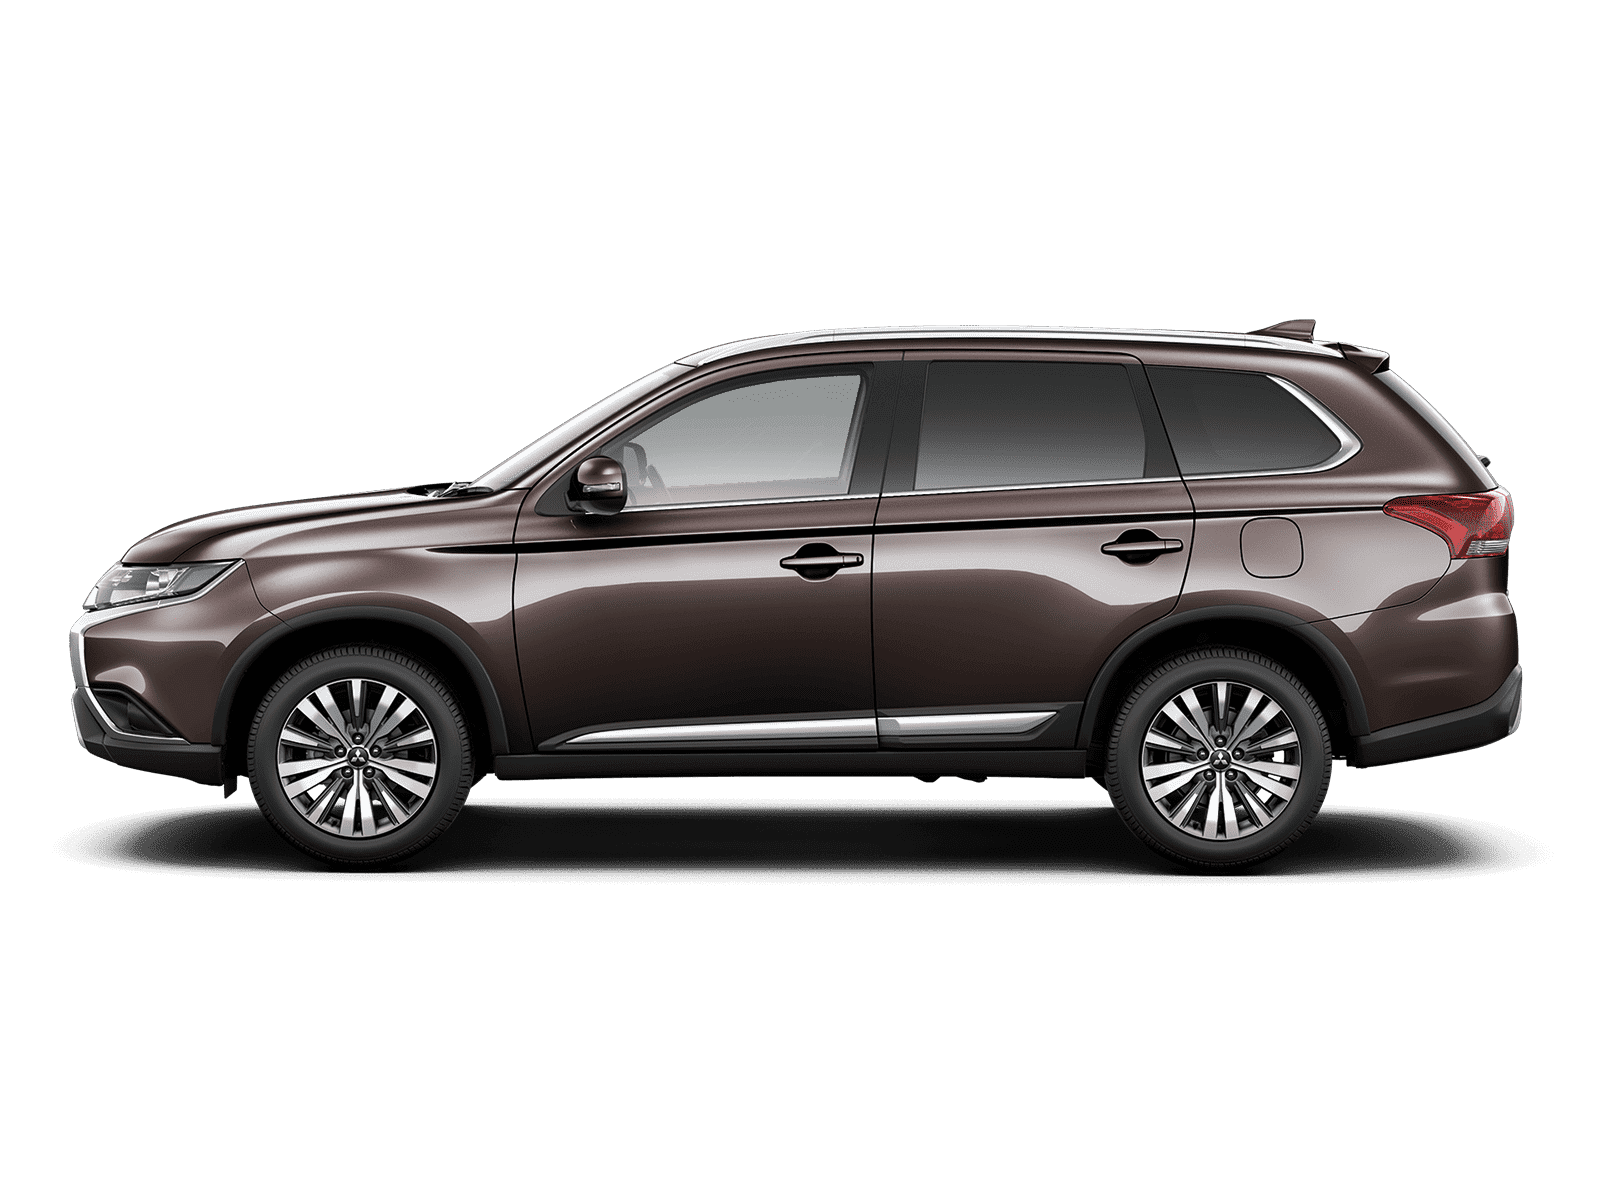 Mitsubishi Outlander PHEV Automatic Hybrid Granite Brown